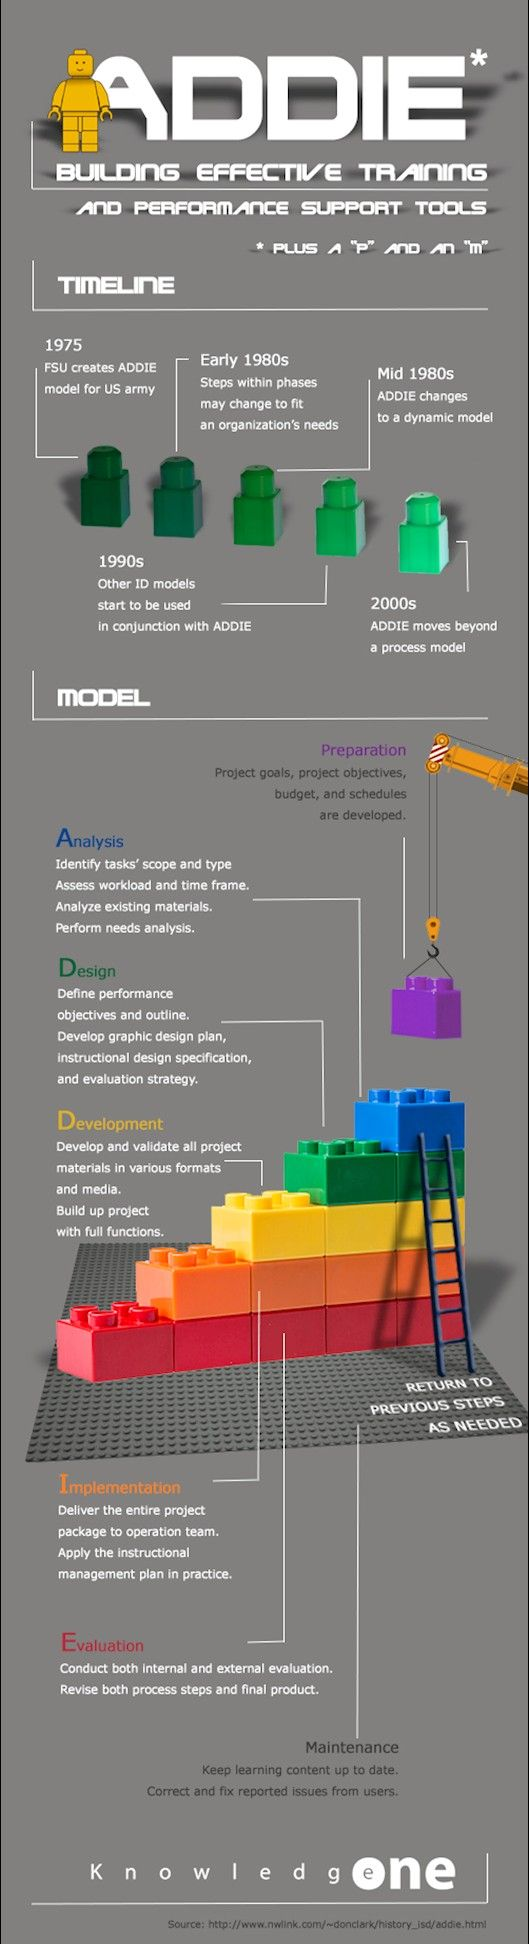 The ADDIE Model - Generic Process Used by Instructional Designers Infographic - http://elearninginfographics.com/the-addie-model-generic-process-used-by-instructional-designers/